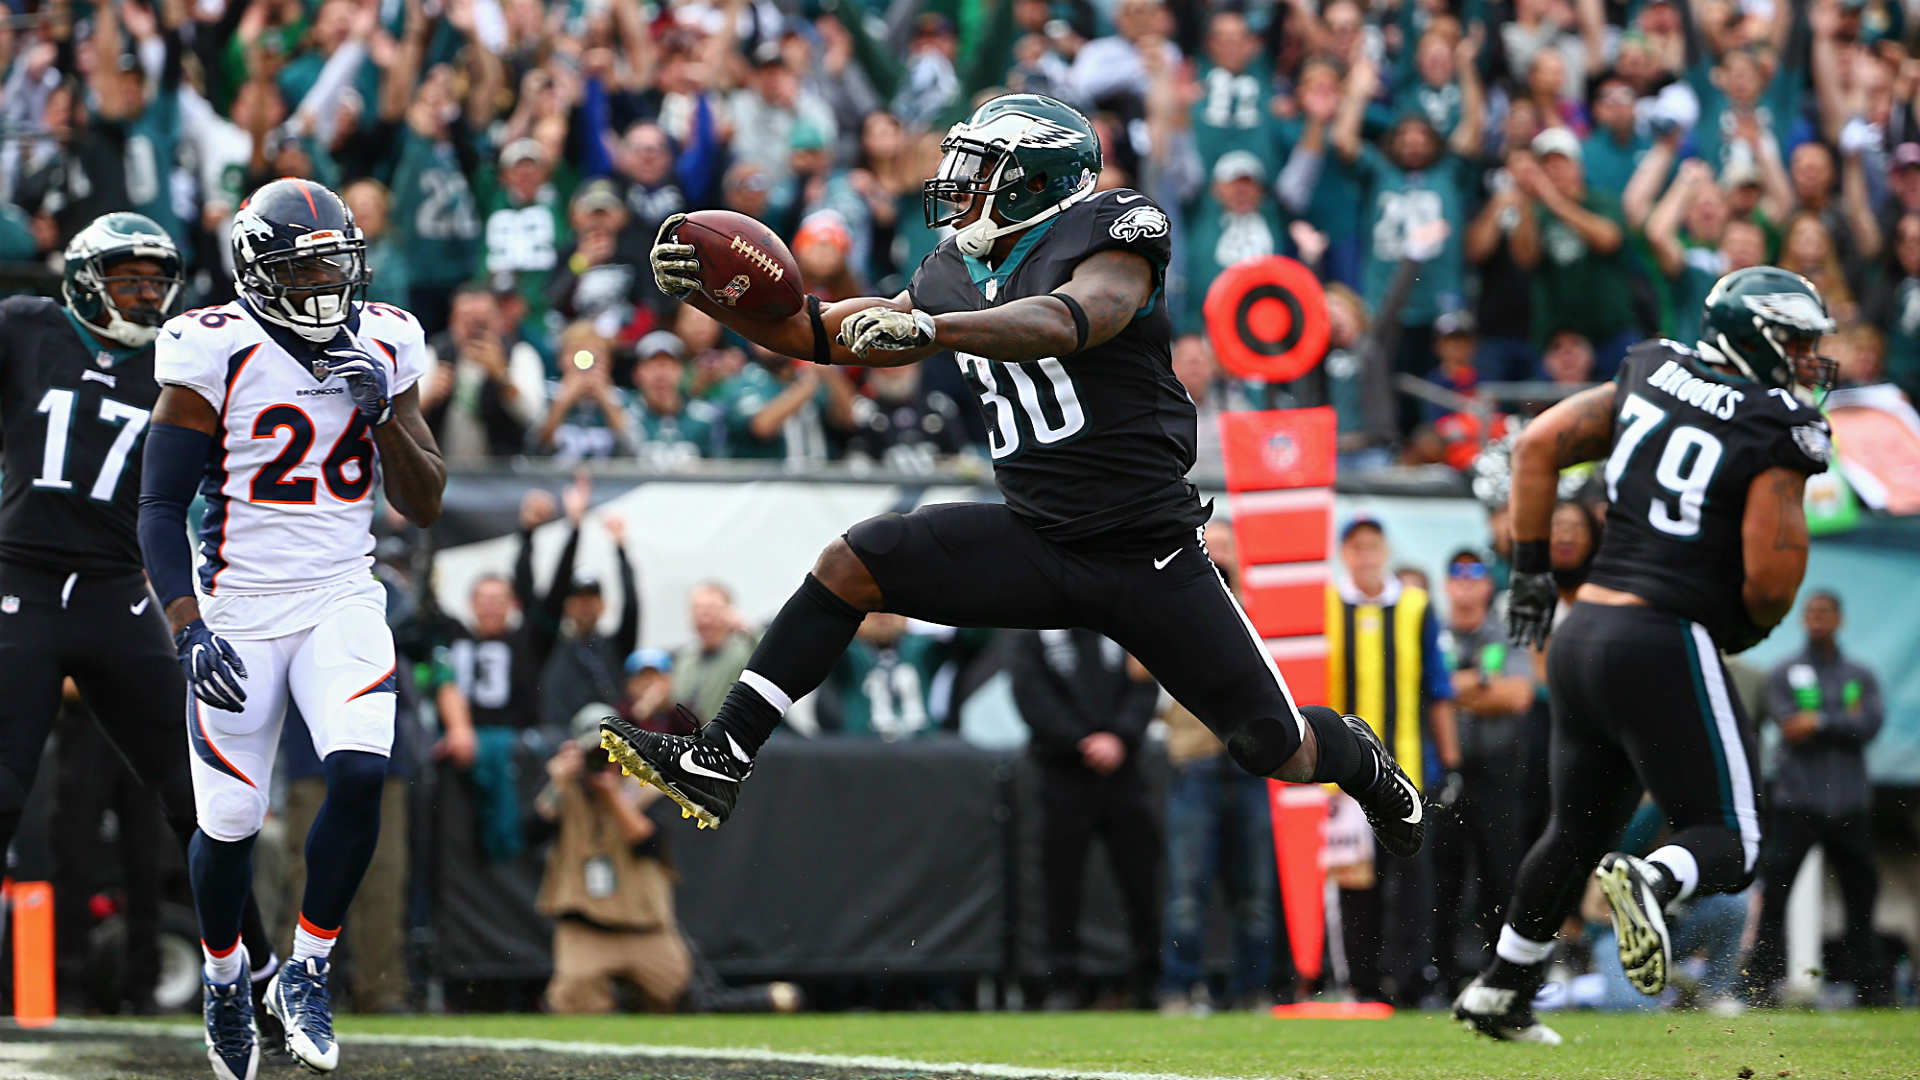 What's the plan for Ronald Darby, Tim Jernigan after bye week?